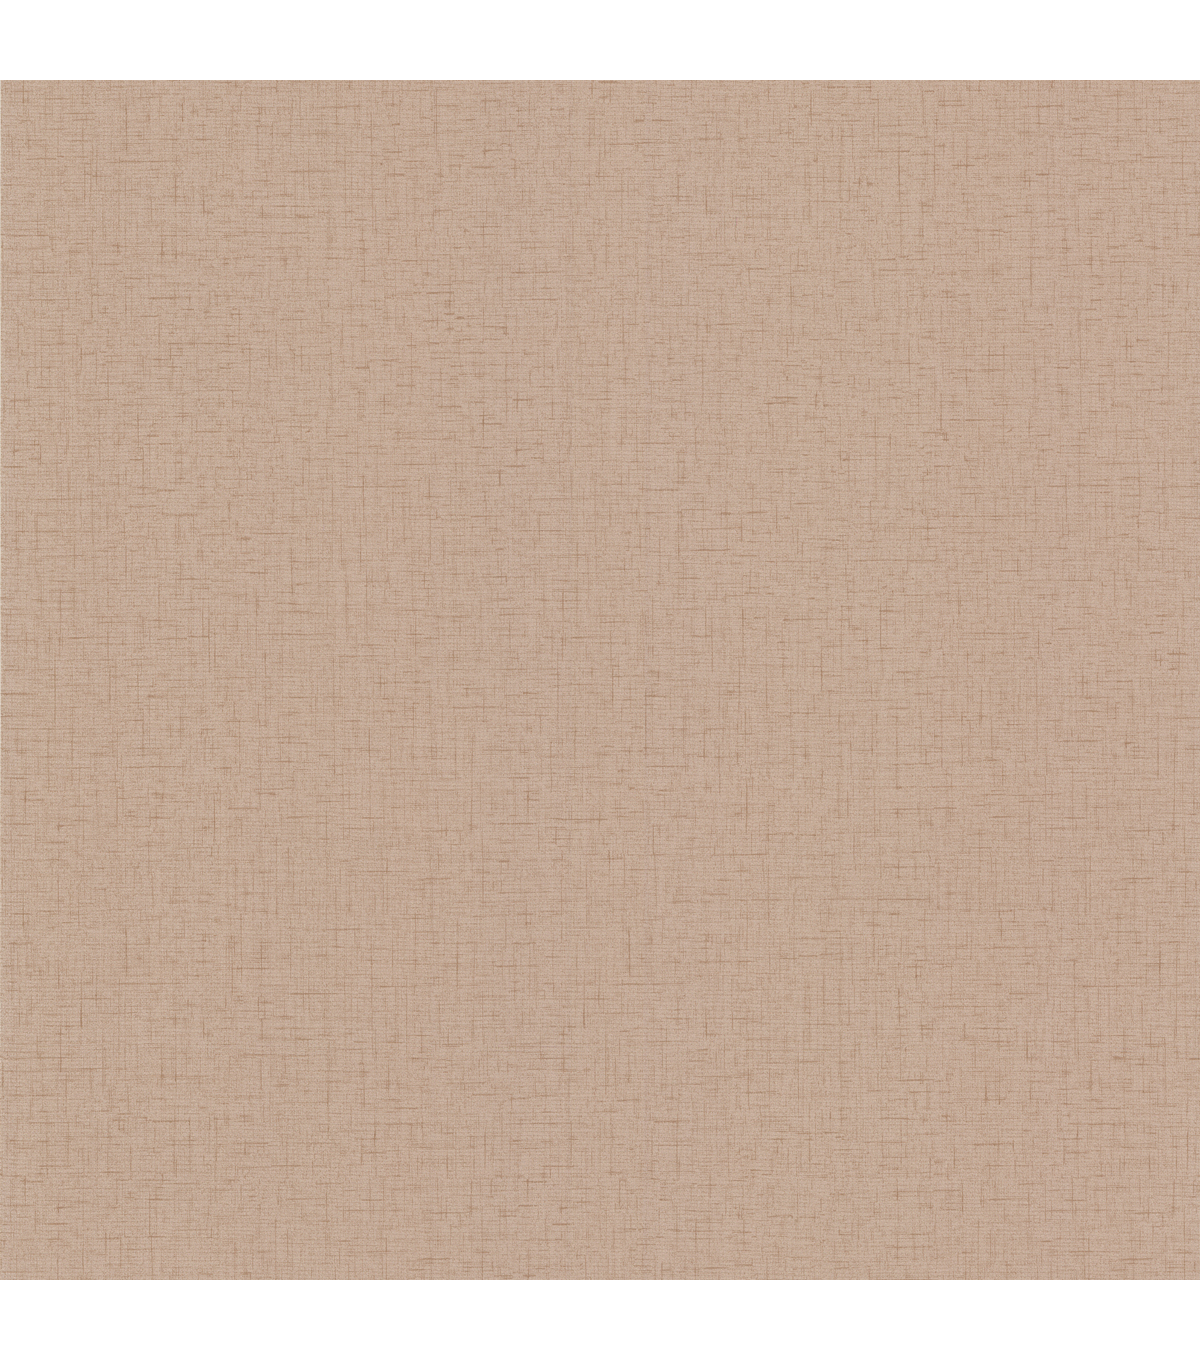 Maia Taupe Texture Wallpaper Sample